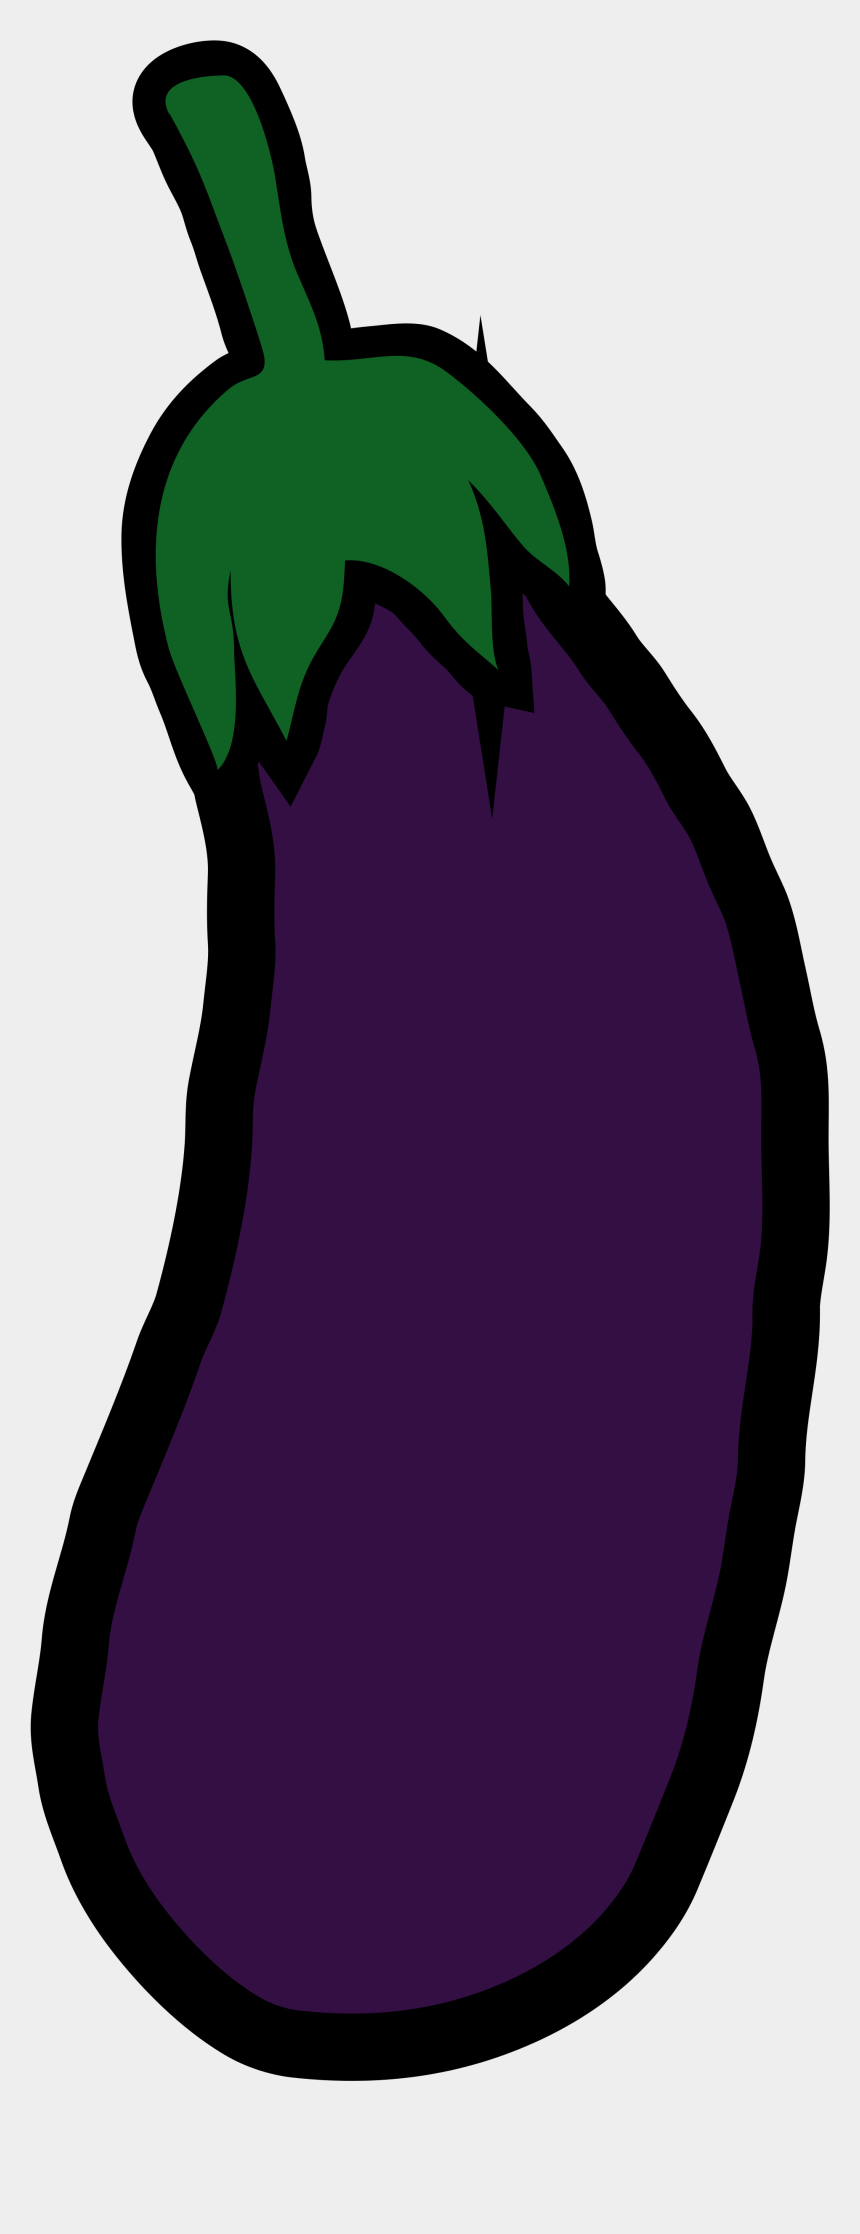 brinjal clipart, Cartoons - File Aubergine Wikimedia Commons - Eggplant